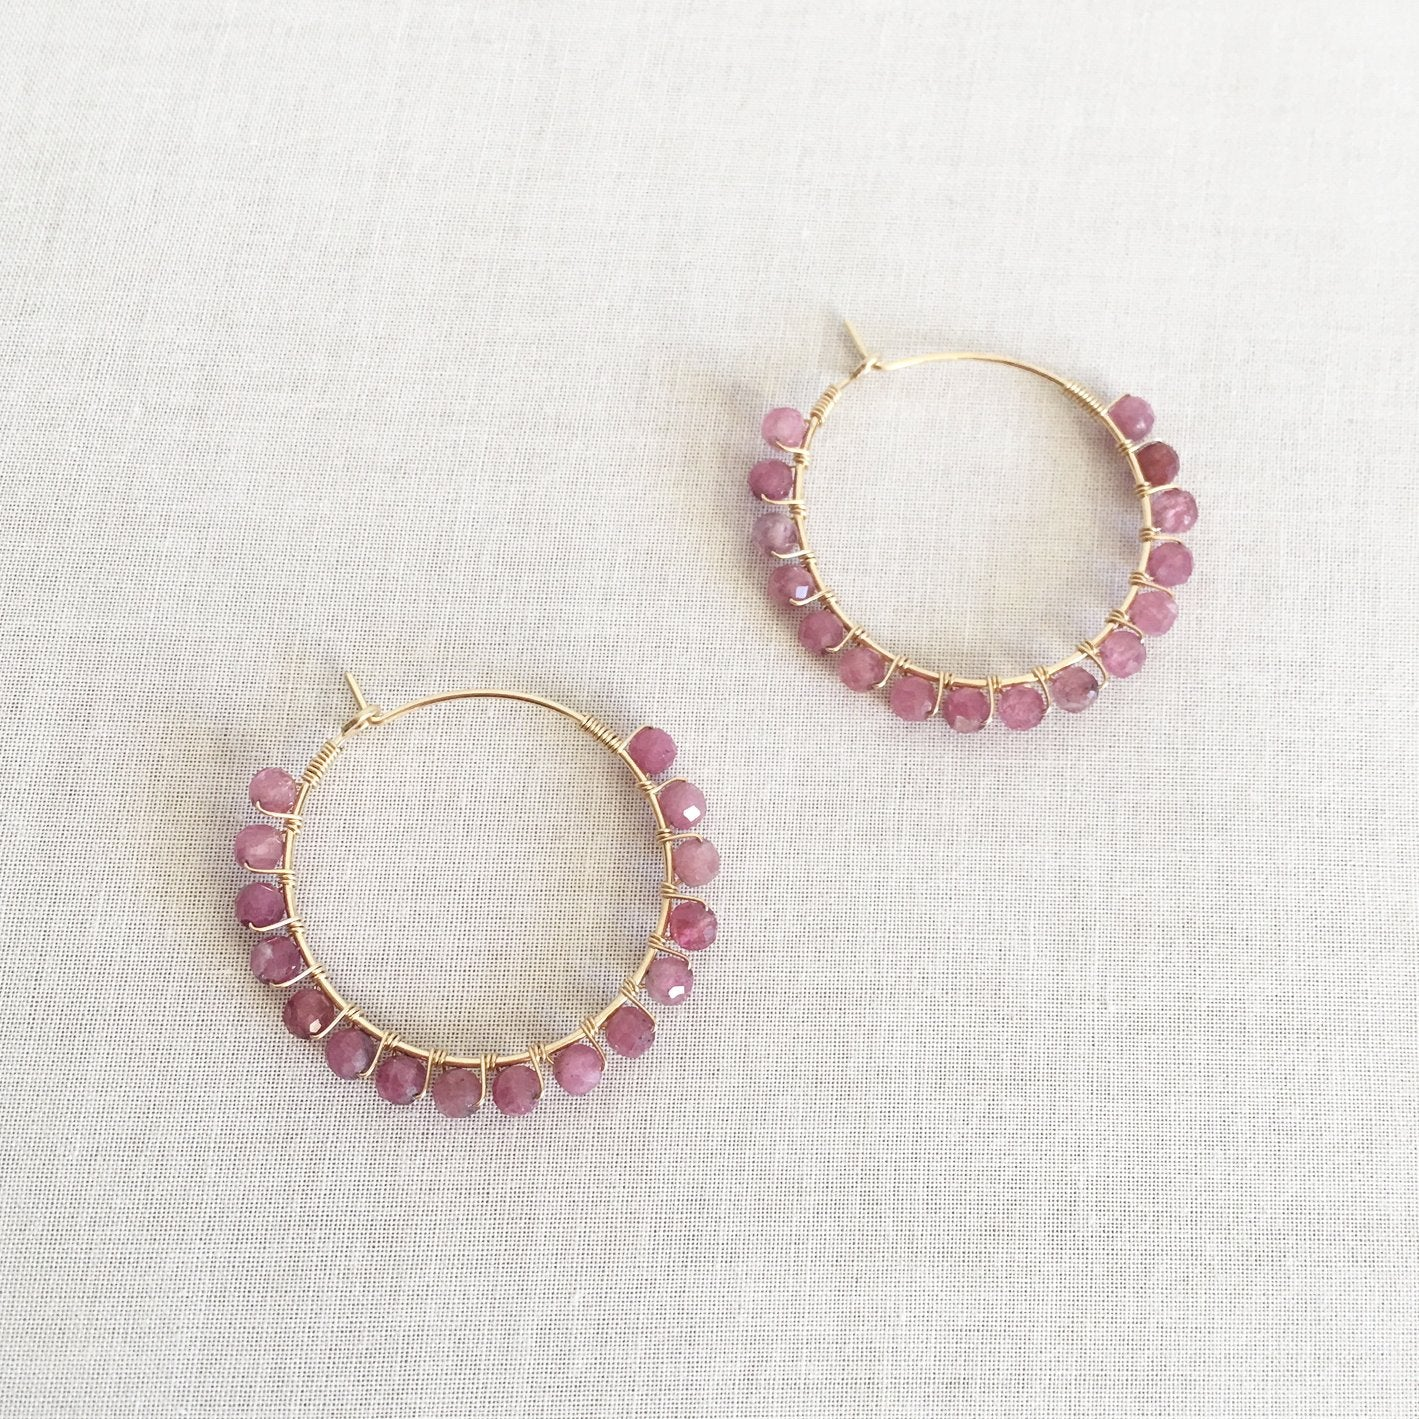 Pink tourmaline hoop earrings are made of gold filled material